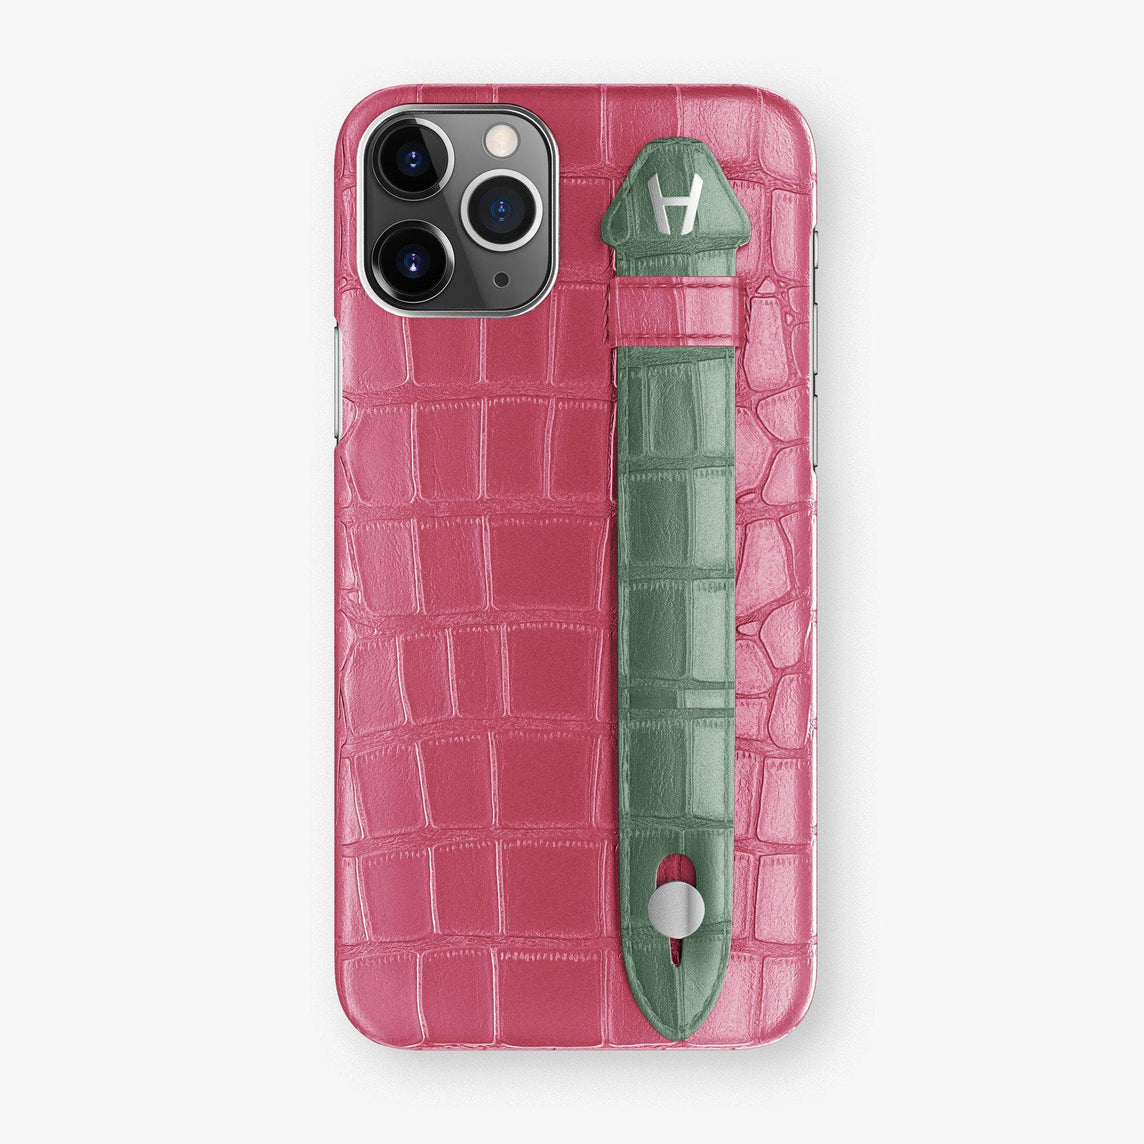 Alligator Finger Case iPhone 11 Pro | Pink Girly/Green Emerald - Stainless Steel